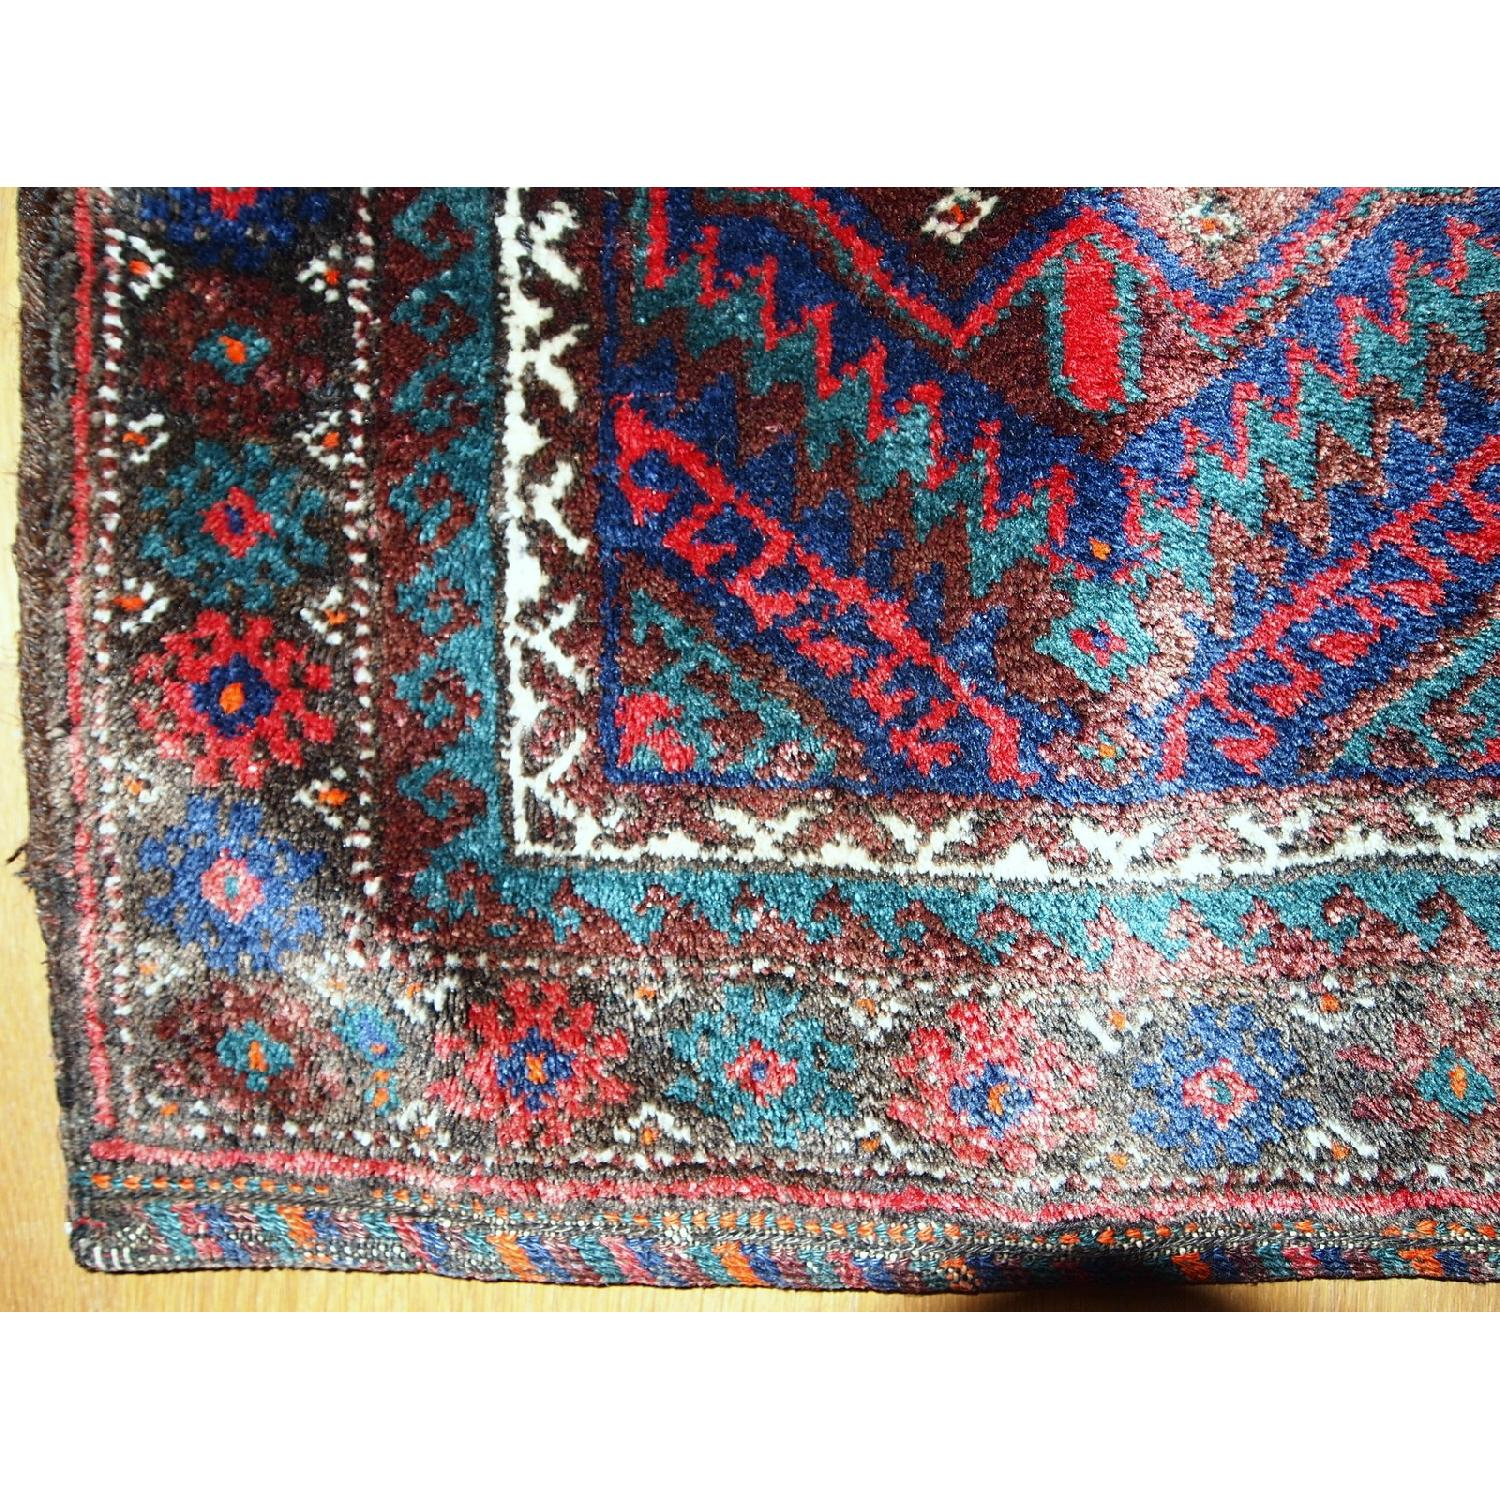 Antique Handmade Persian Kurdish Salt Bag Rug-8